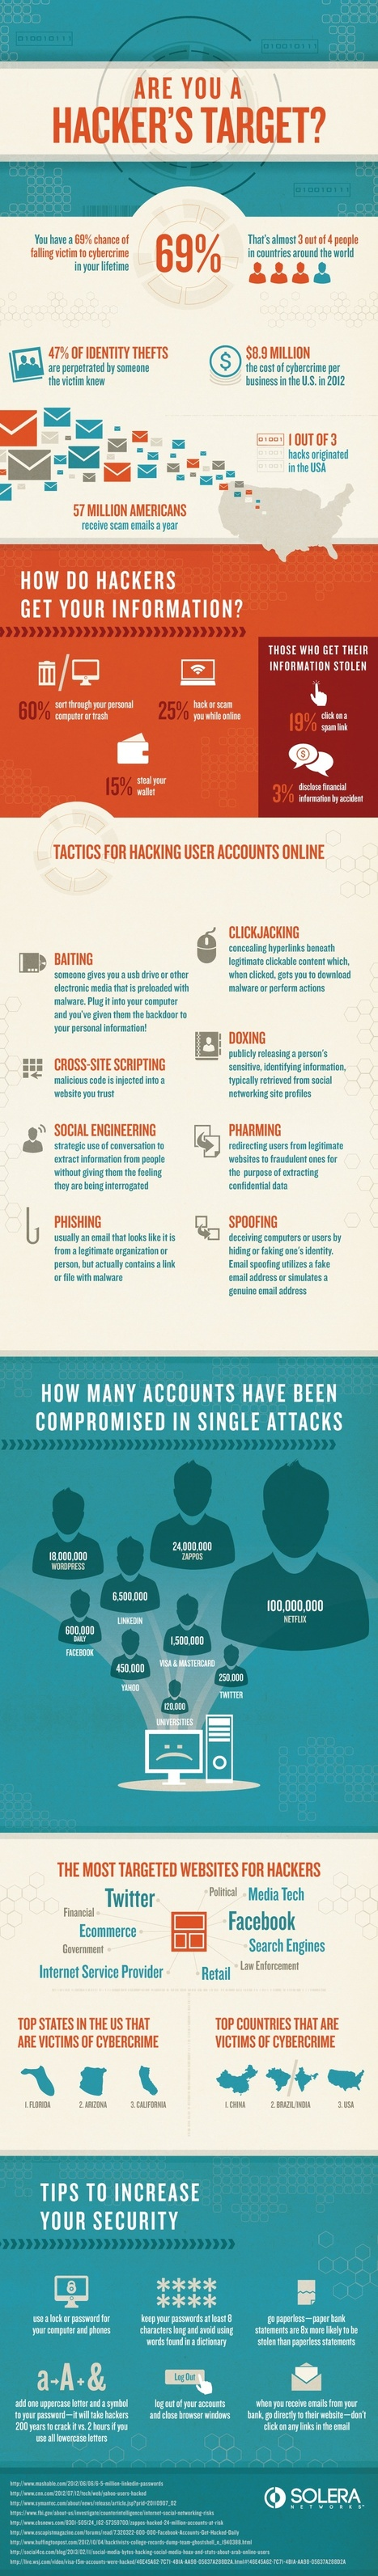 INFOGRAPHIC: Cybercrime - Are you a Hacker's Target? | Cloud Central | Scoop.it